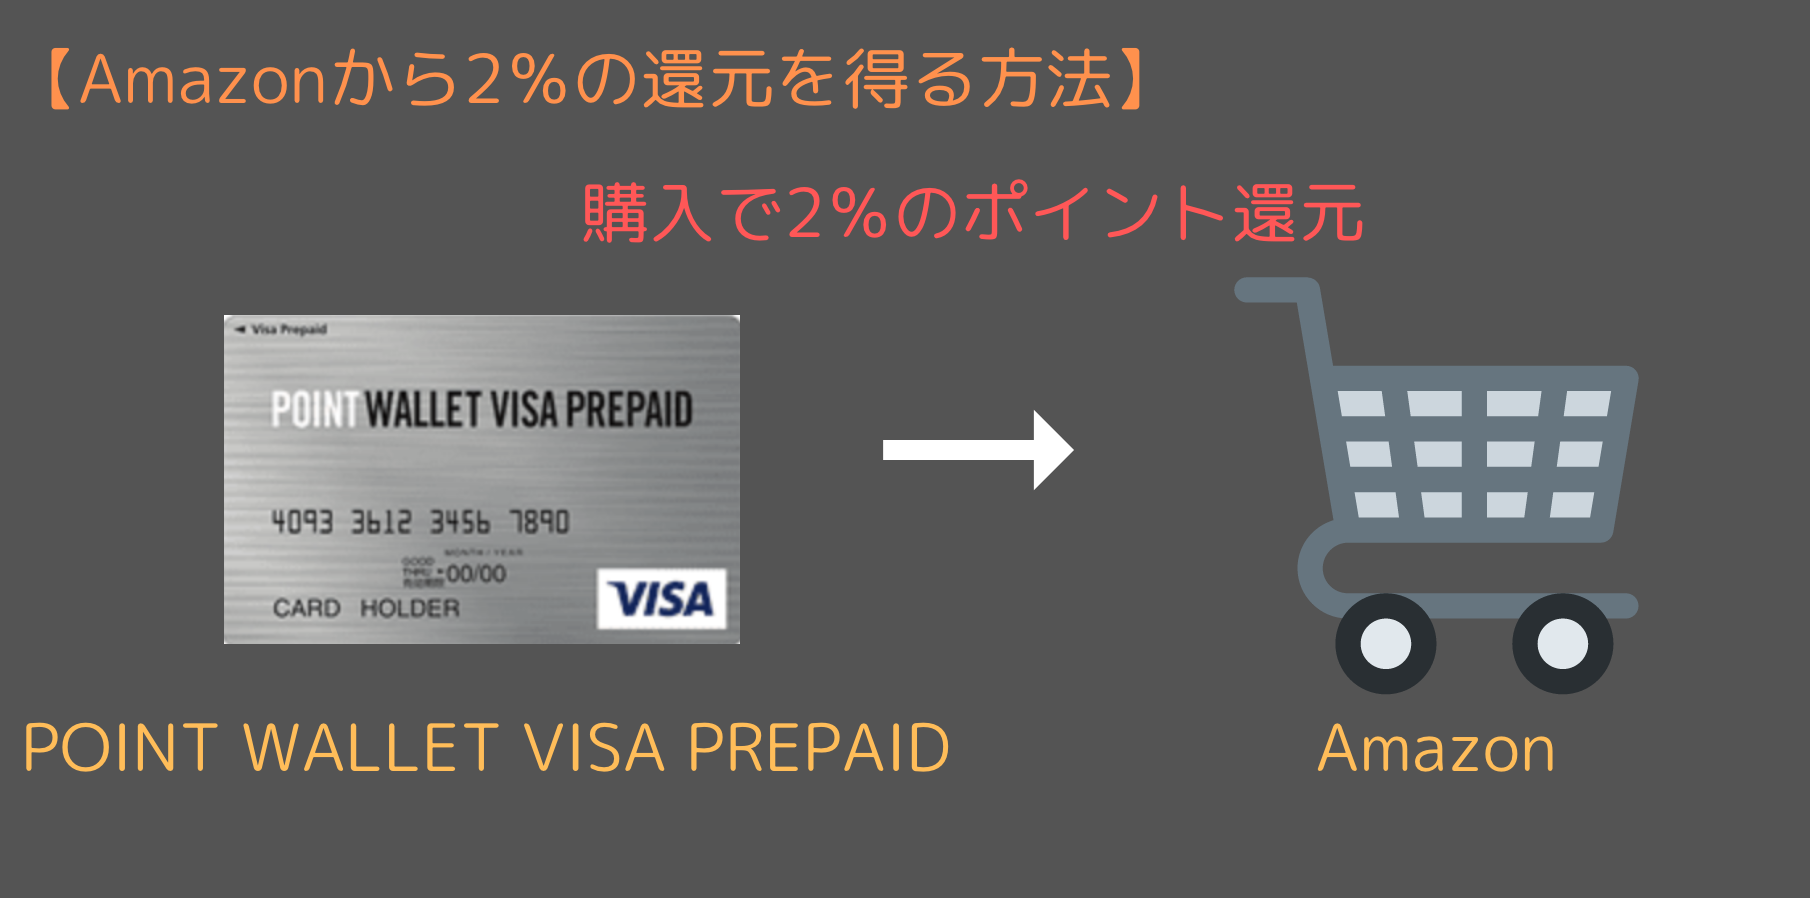 POINT WALLET VISA PREPAIDの方法